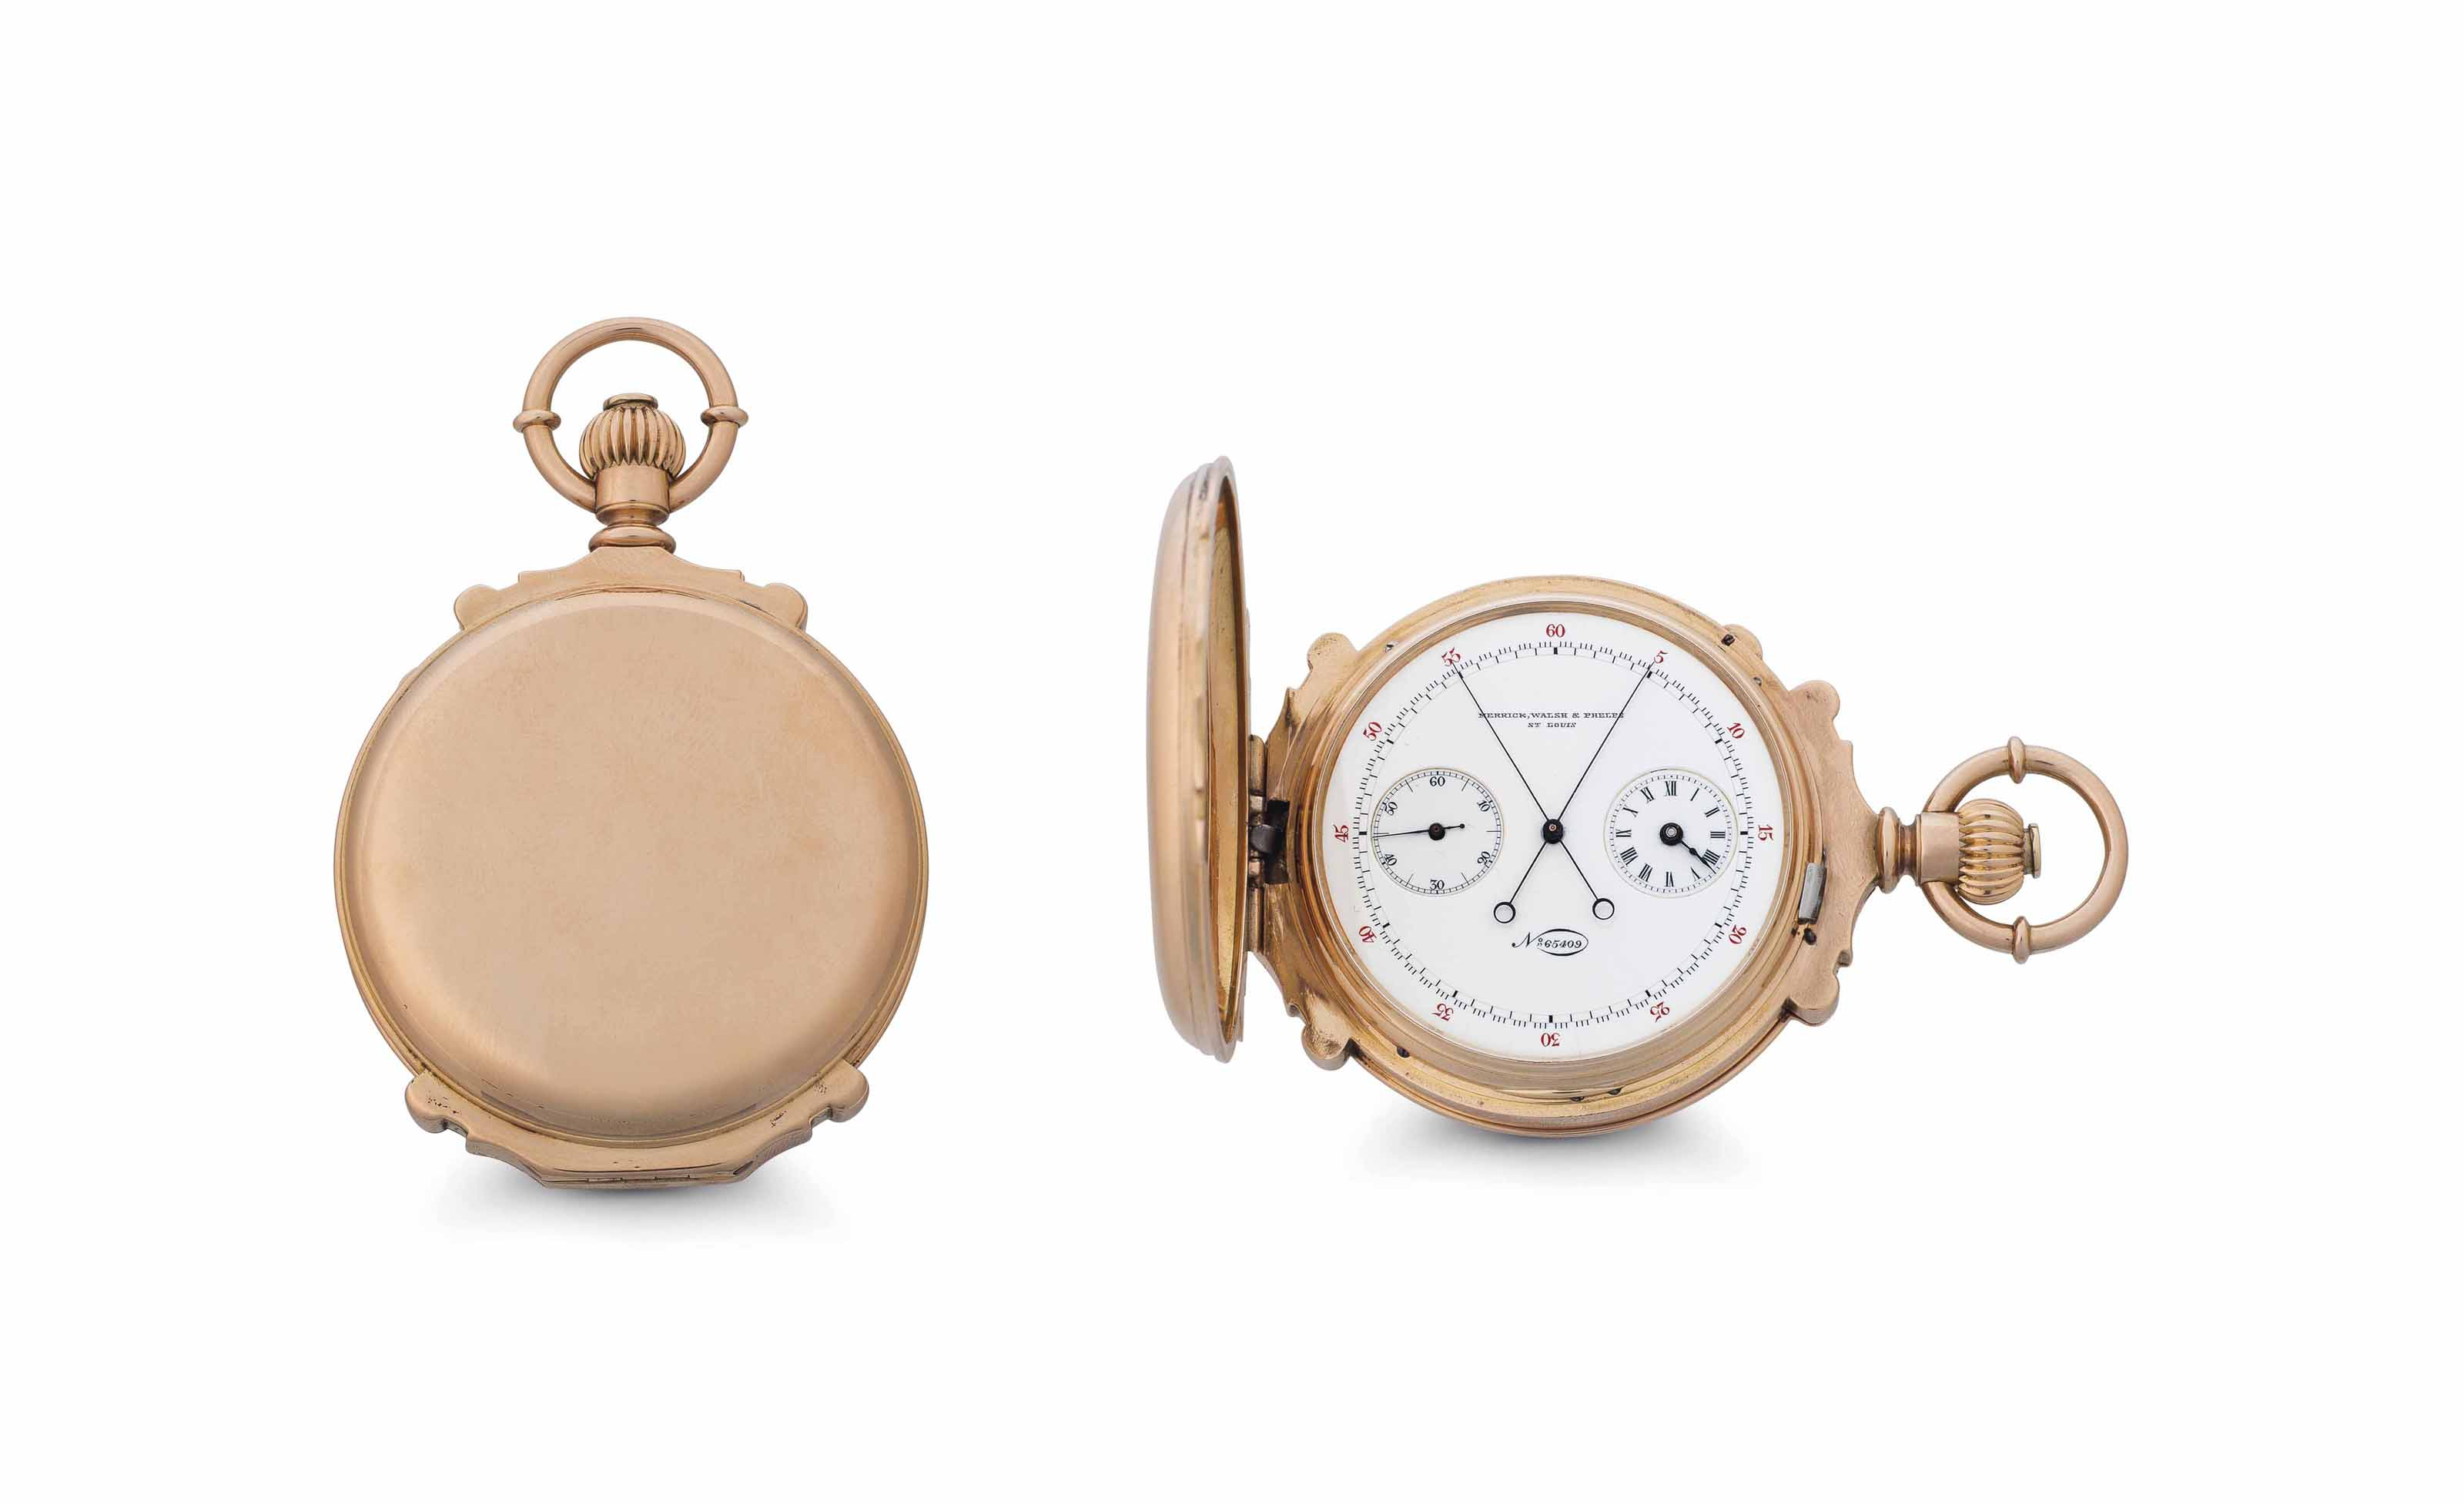 Patek Philippe.  A Fine and Rare 18k Pink Gold Box Hinged Hunter Case Keyless Lever Split-Seconds Chronograph Pocket Watch